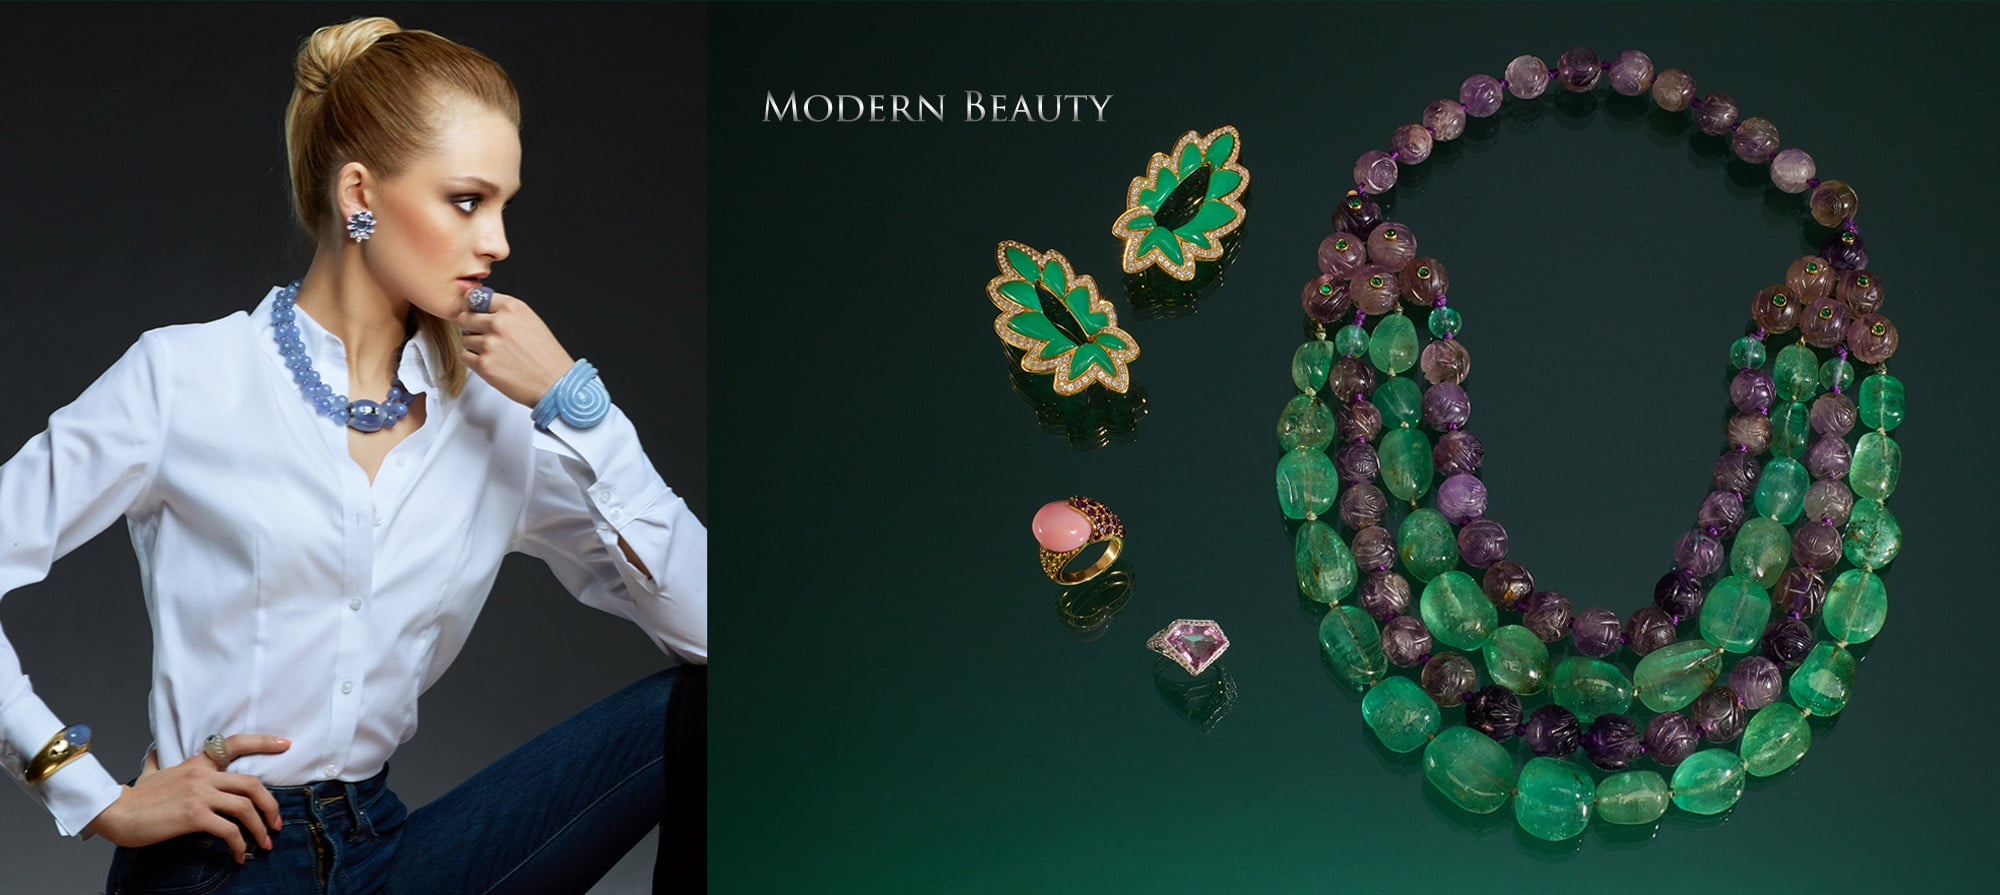 French Green Chalcedony and Diamond Earrings. Circa 1960, Emerald and Amethyst Necklace by Suzanne Belperron. Circa 1940, Art Deco Morganite & Diamond Ring, Conch Pearl, Amethyst, & Peridot Ring by Rene Boivin, Paris